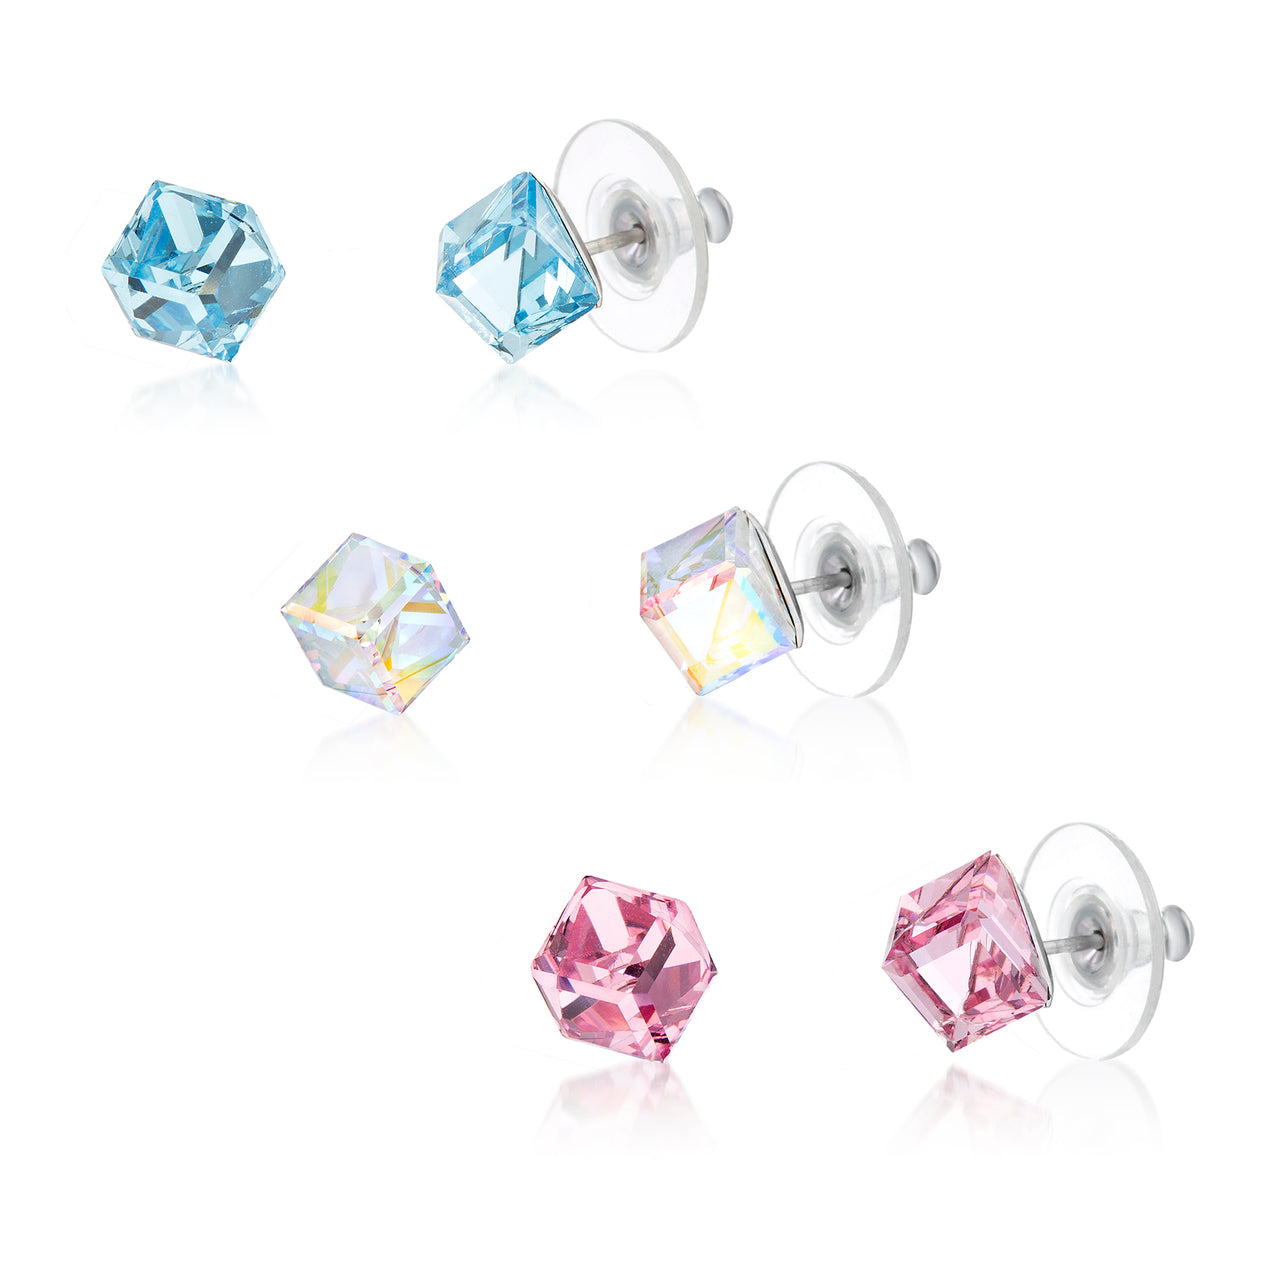 486831d0a 3 pair Cube Earring Set for Women for Women in Stainless Steel made with  Swarovski Crystals